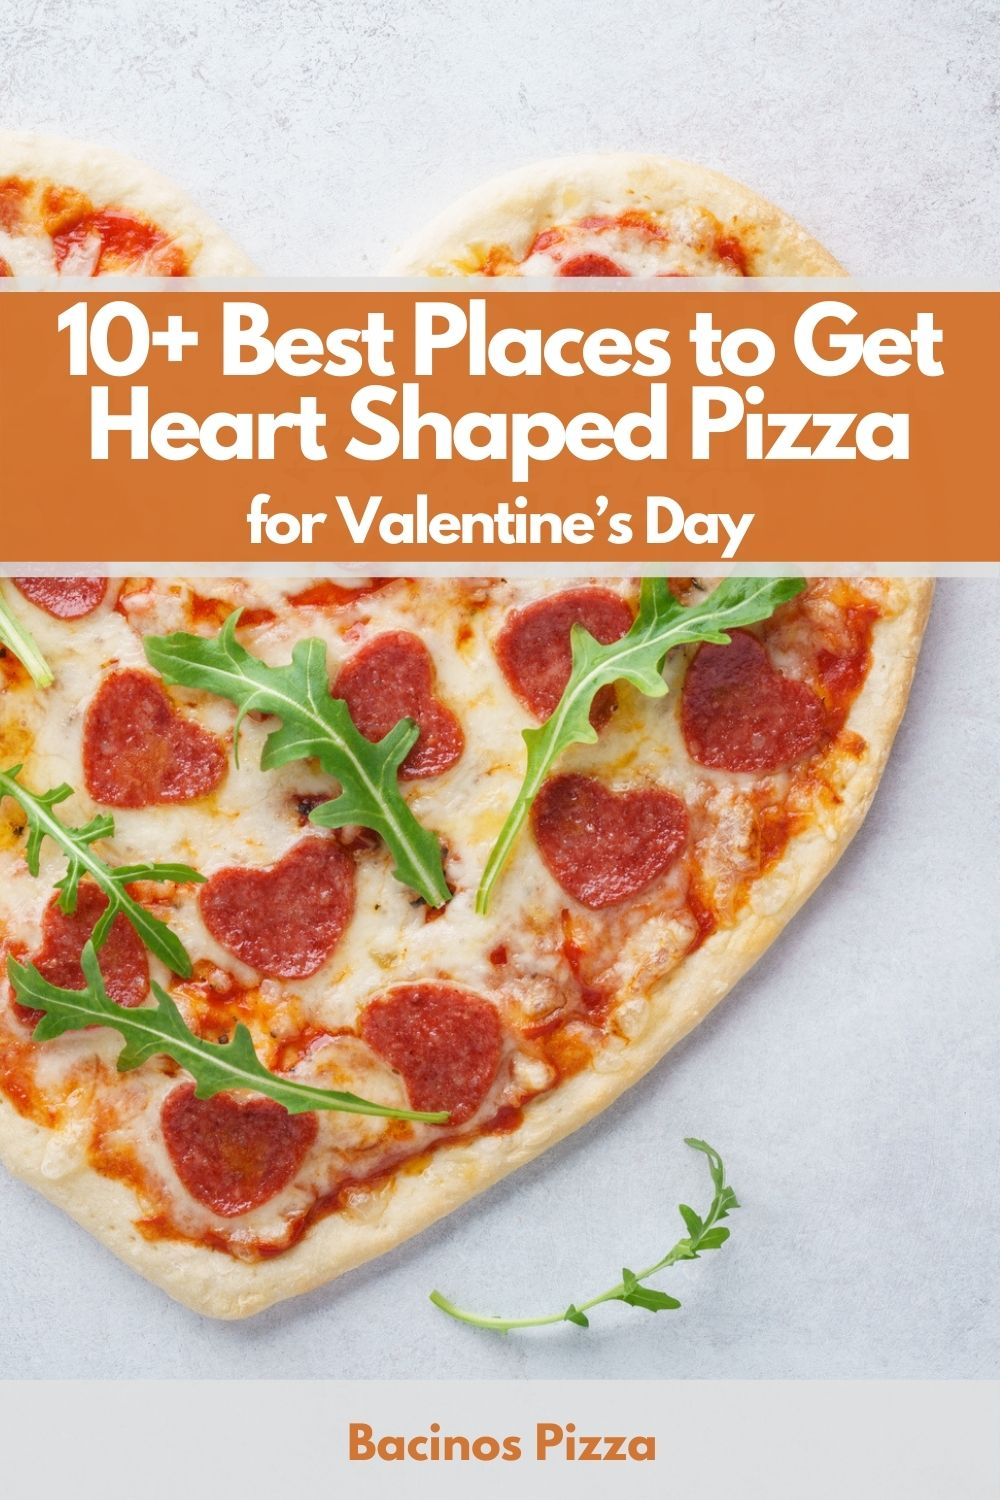 10+ Best Places to Get Heart Shaped Pizza for Valentine's Day pin